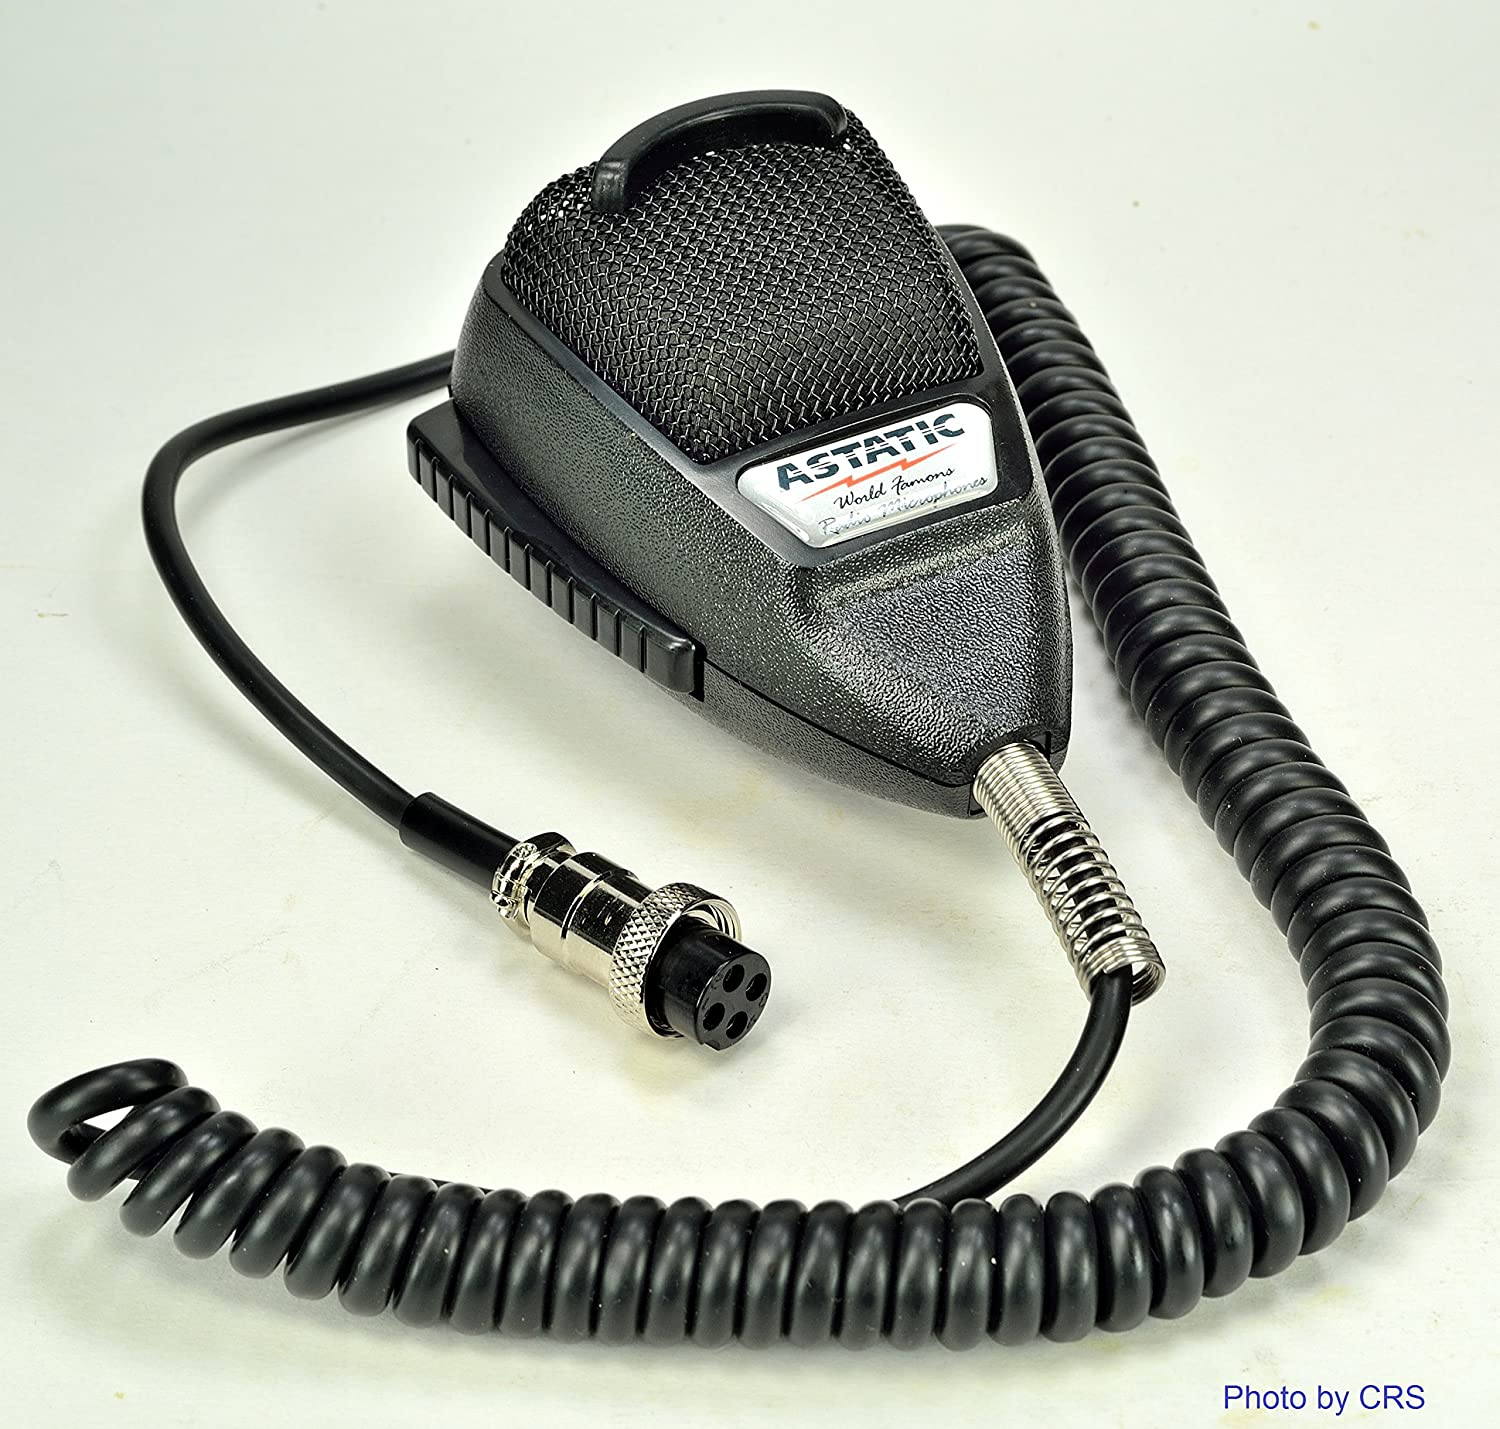 Astatic 636l Noise Canceling Mic Cb Radio 4 Pin Cobra Mixer Wiring 636lb1 Cell Phones Accessories